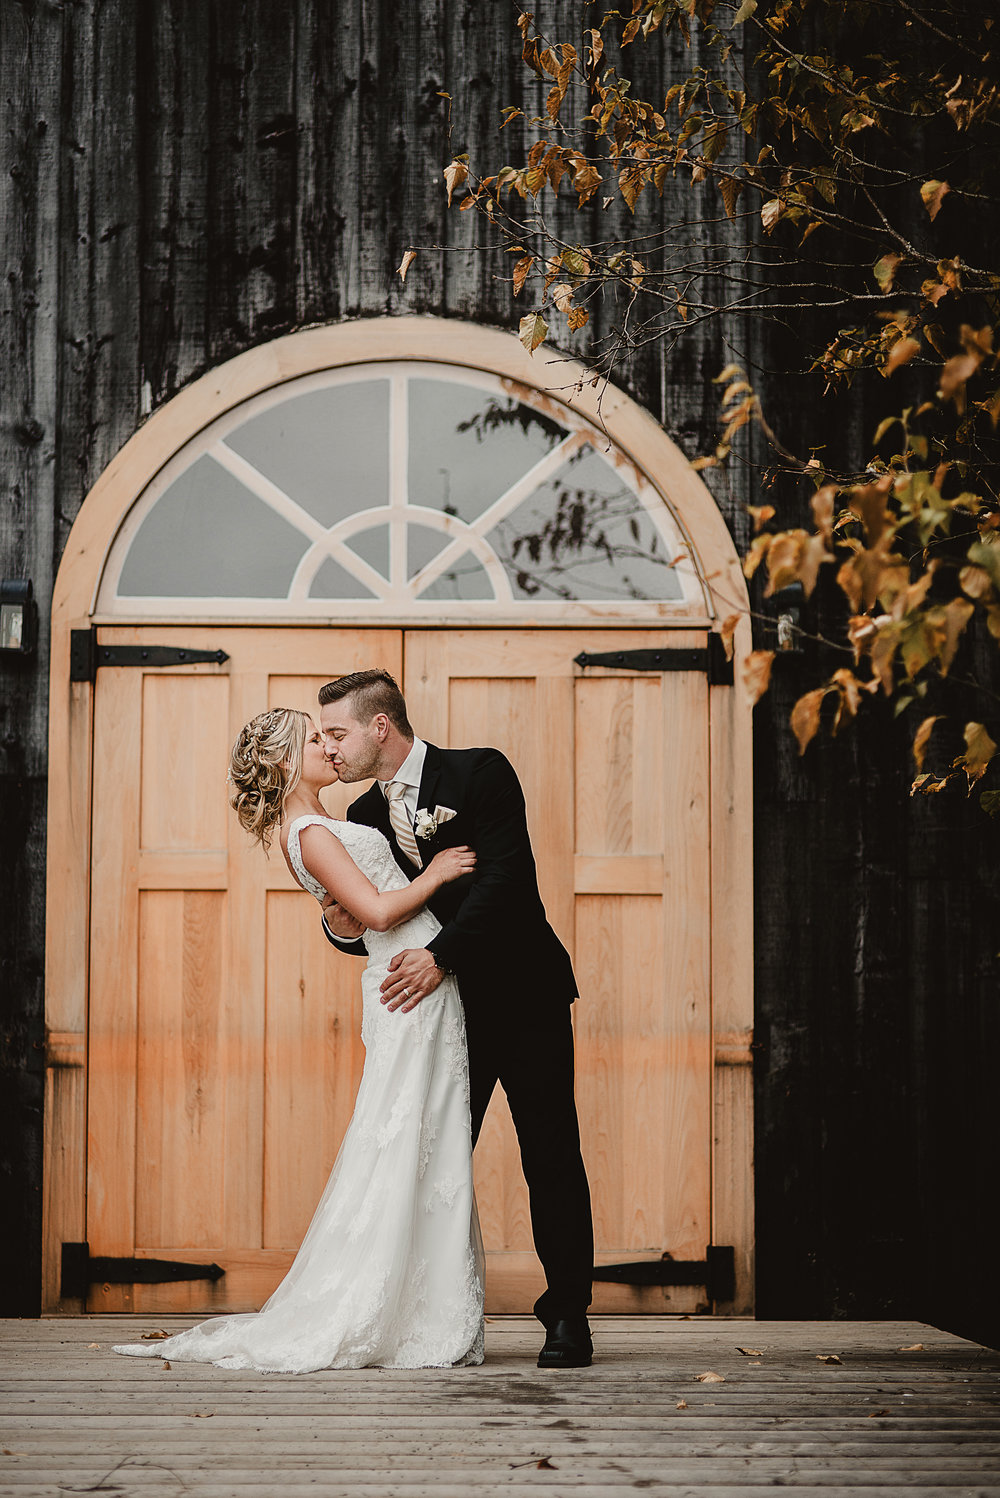 Fall Wedding in Canada | Emeris Photography Munich Wedding Photographer